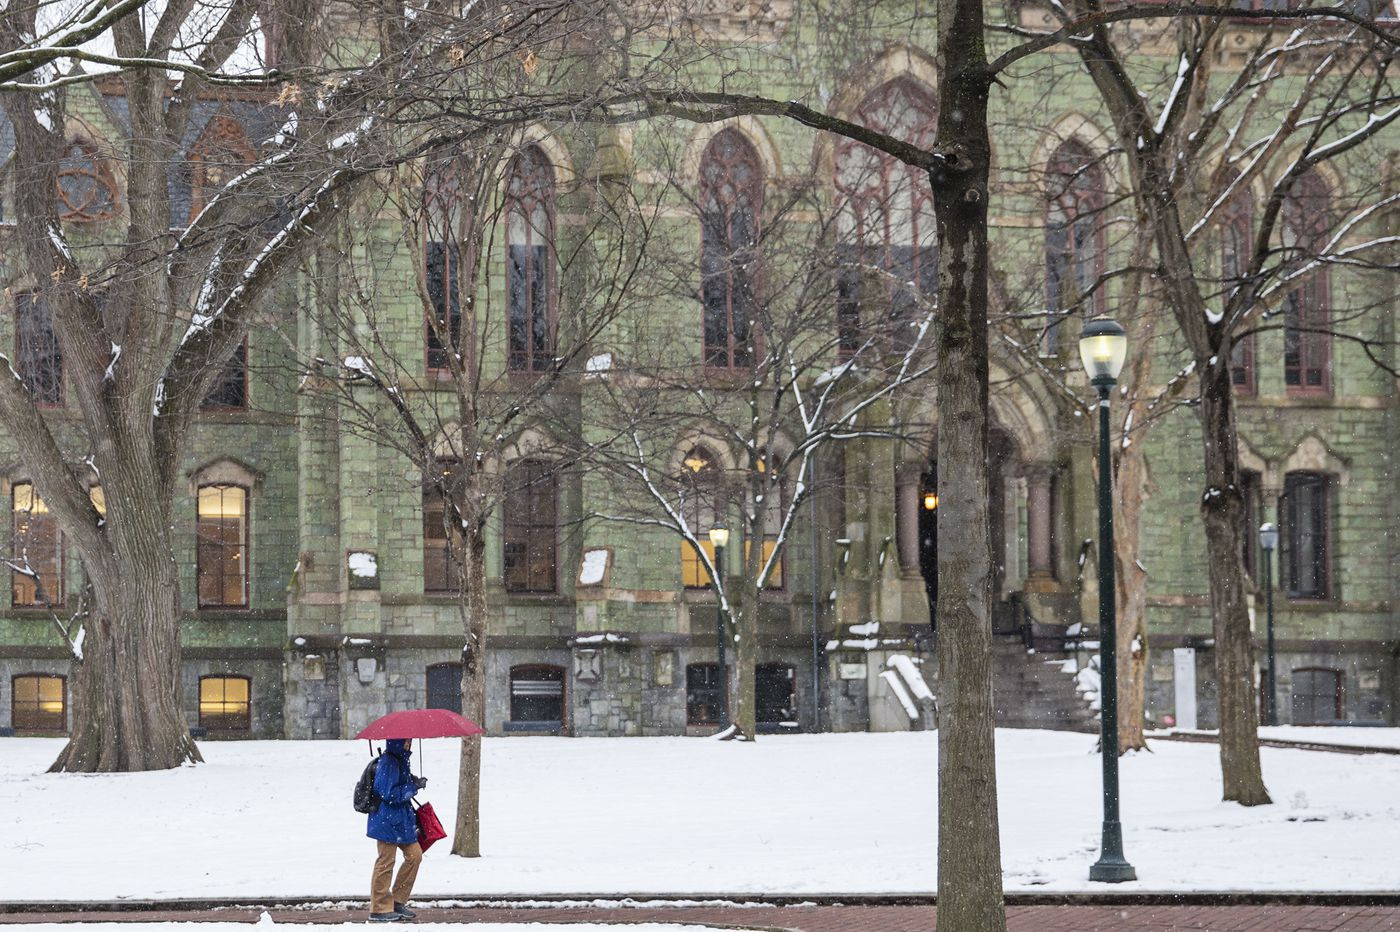 Costs to attend Penn will approach $74,000 in 2019-20